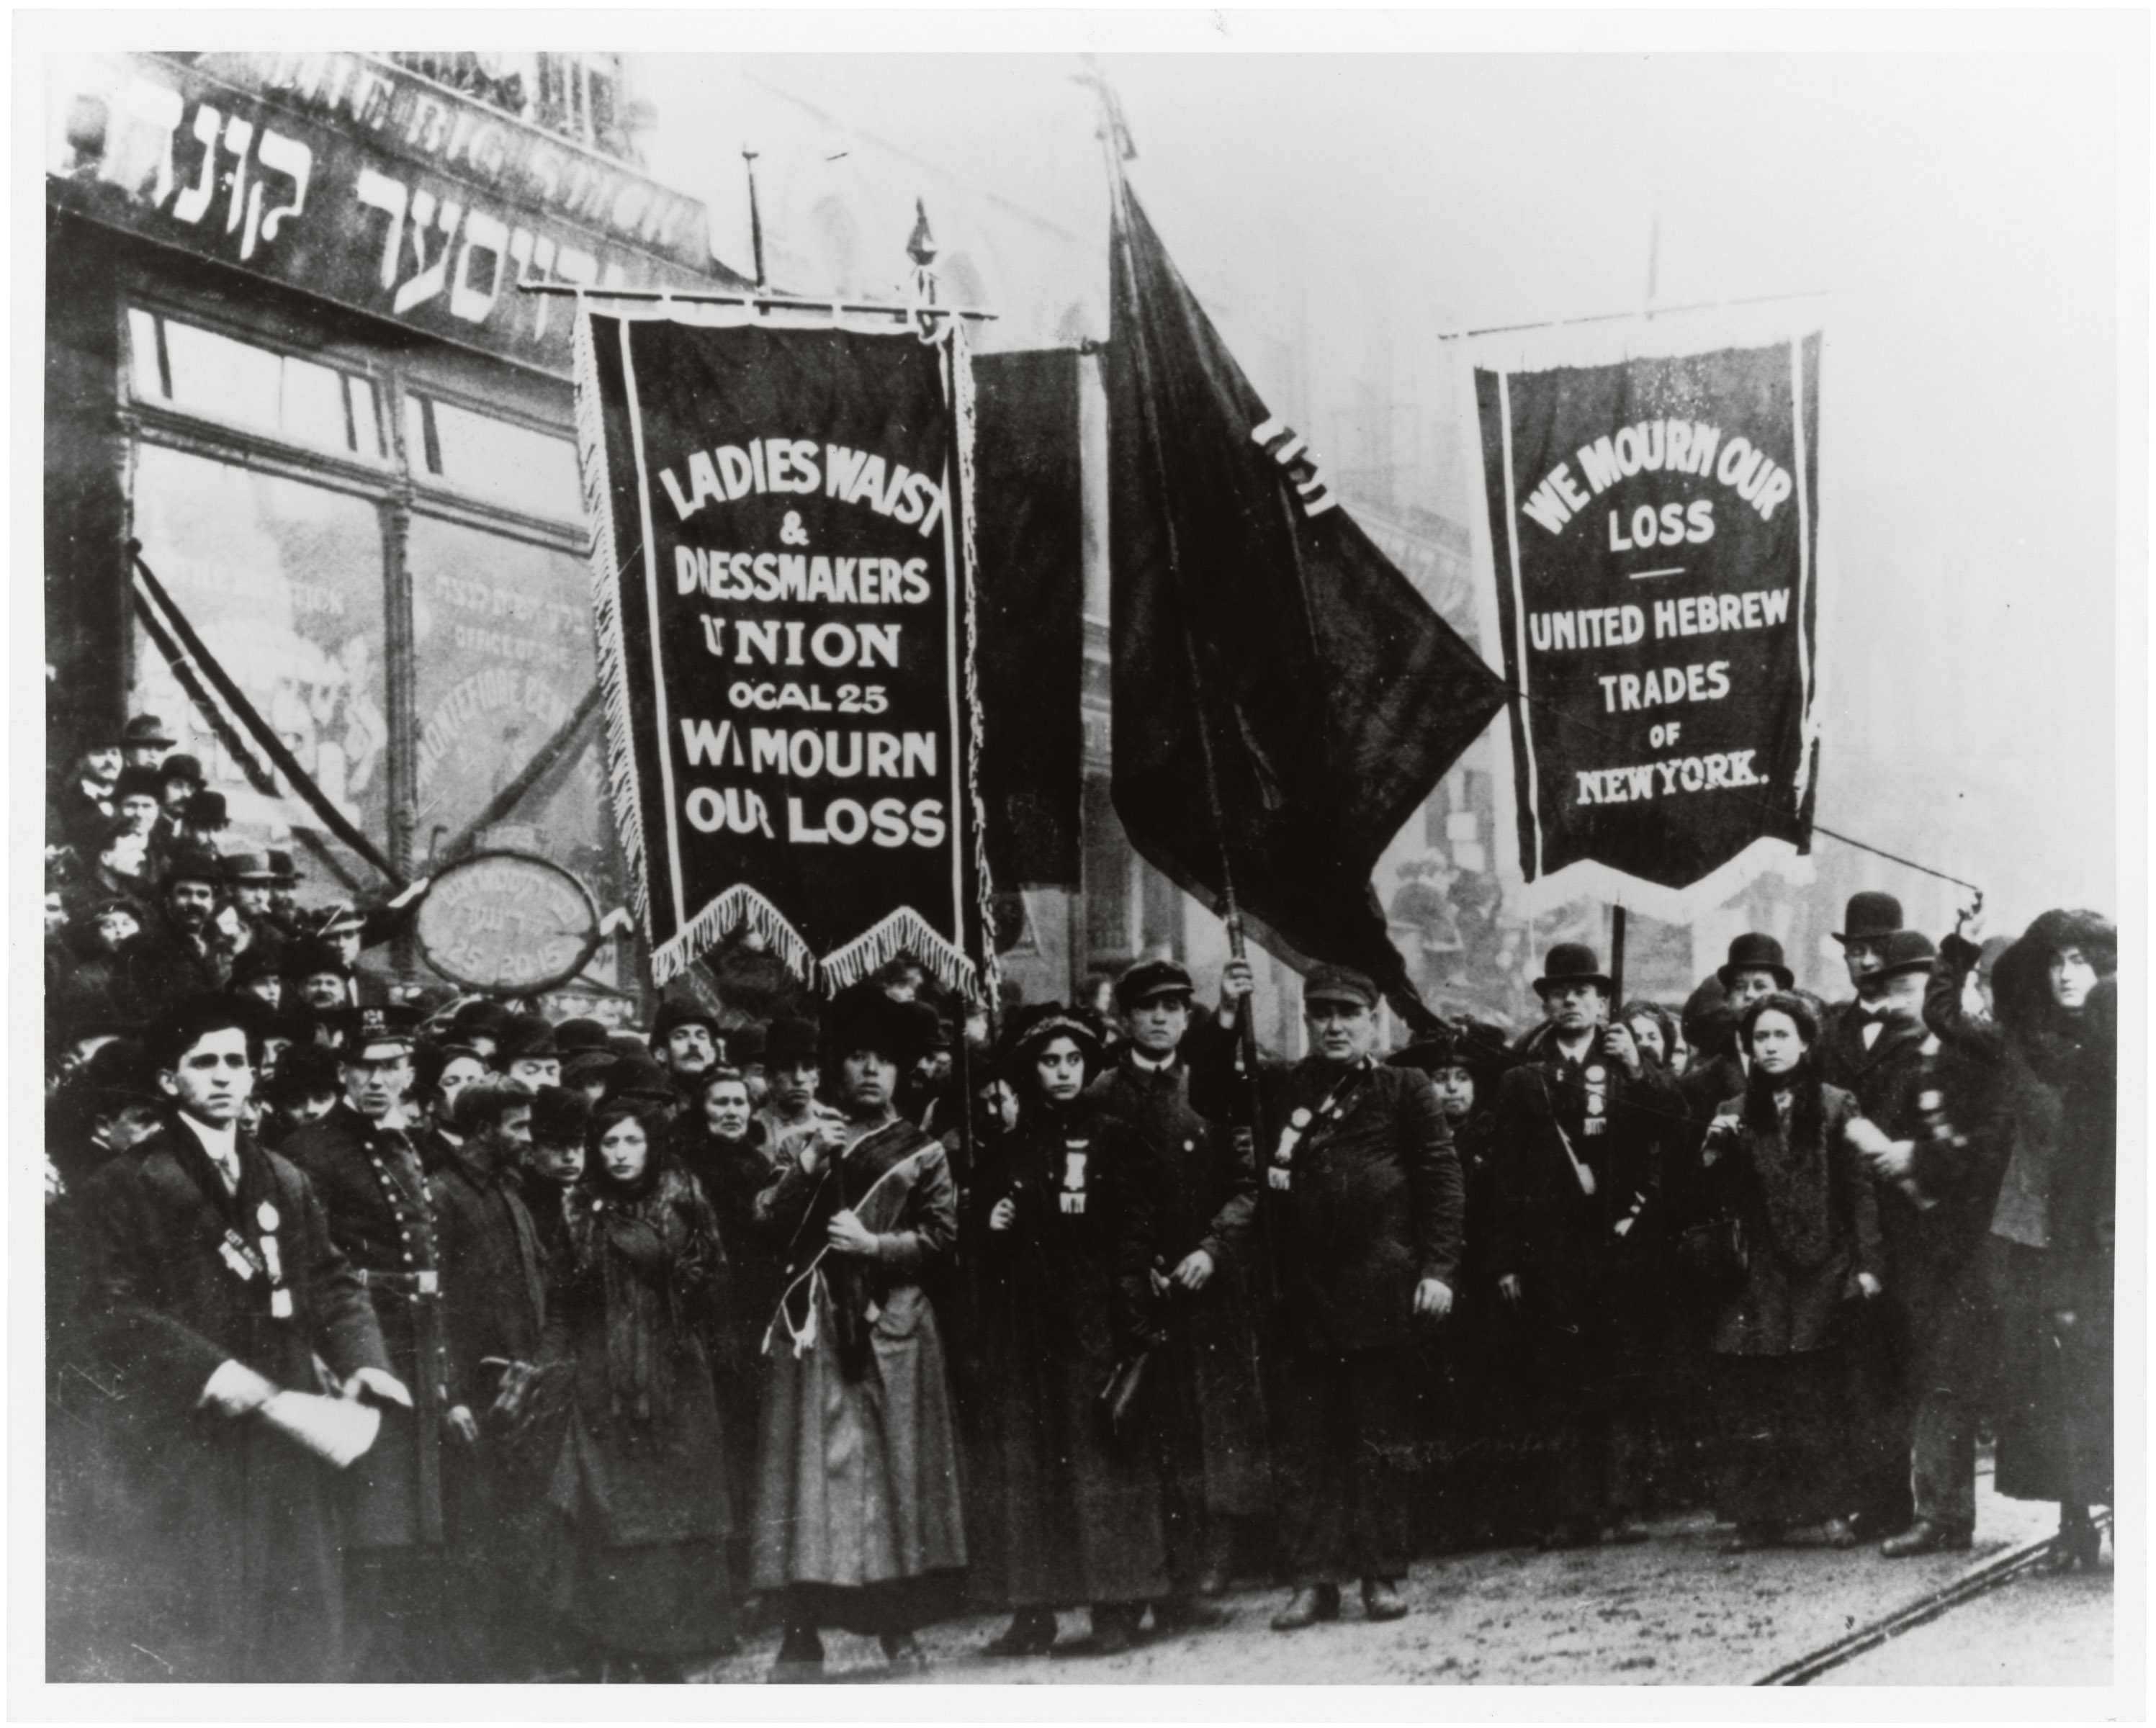 Triangle Shirtwaist Factory fire forged labor unions, workers' rights and workplace safety